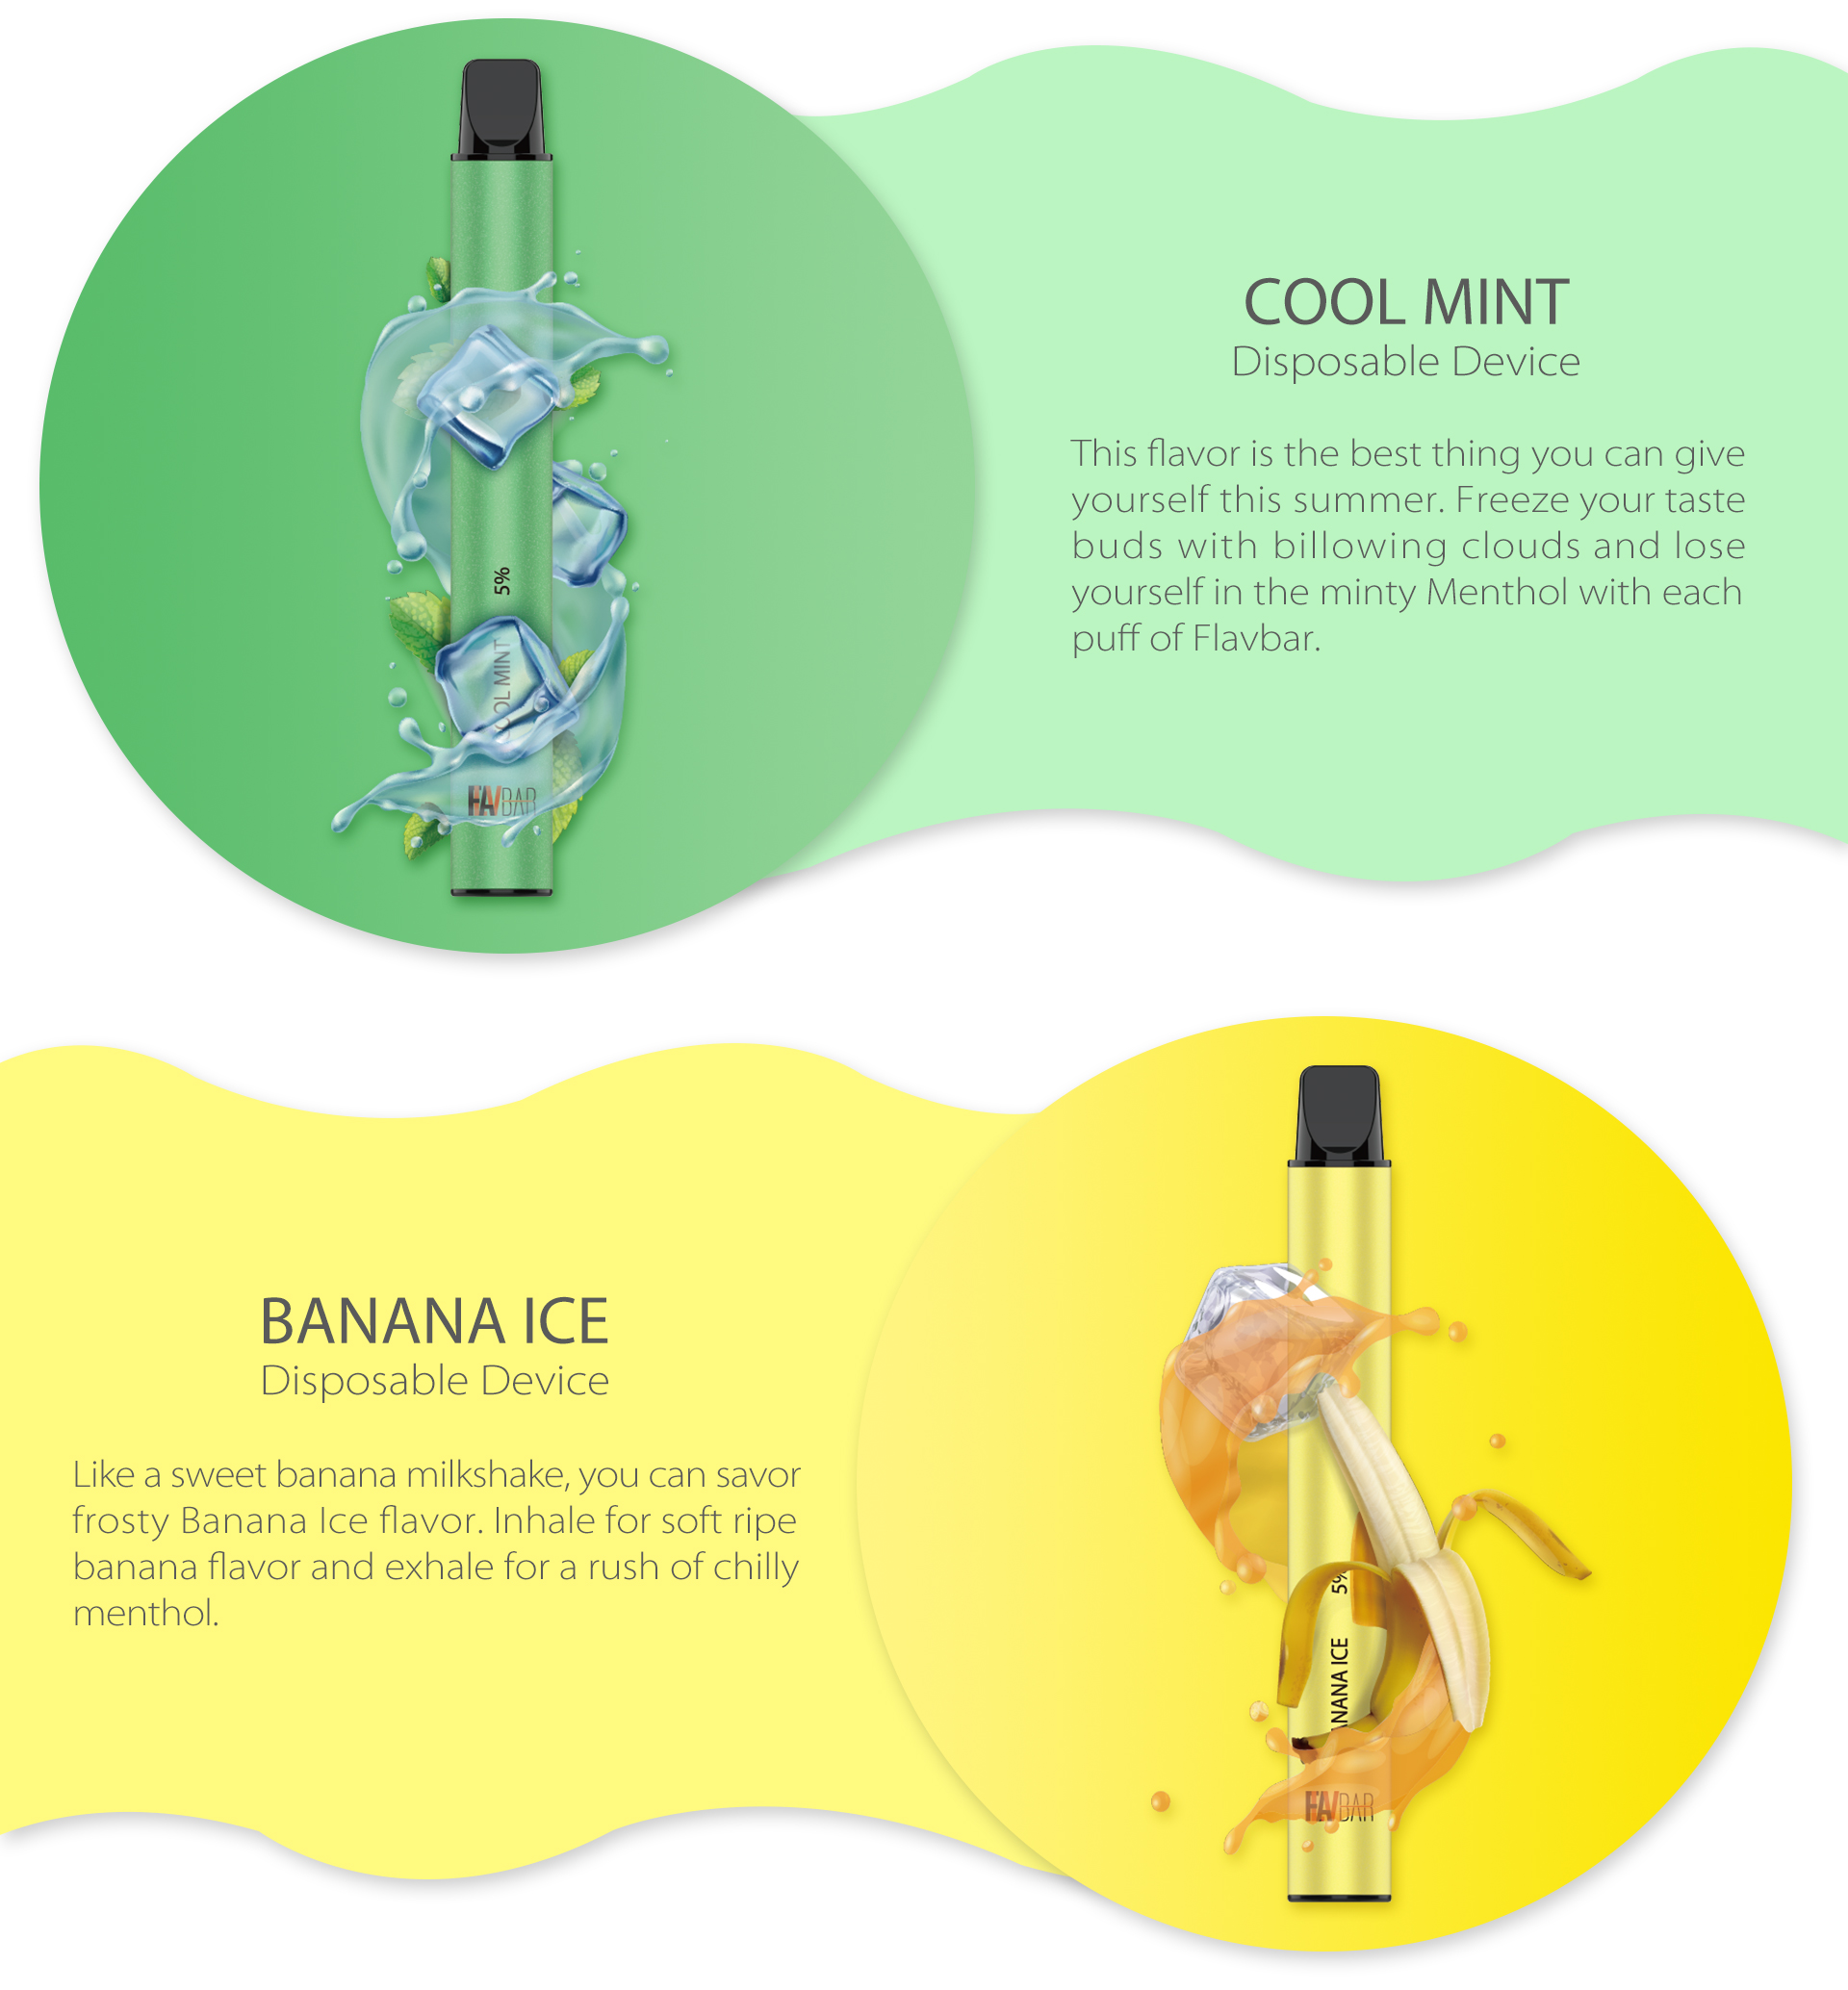 FLAVBAR v2 disposable device cool mint and banana ice flavor.